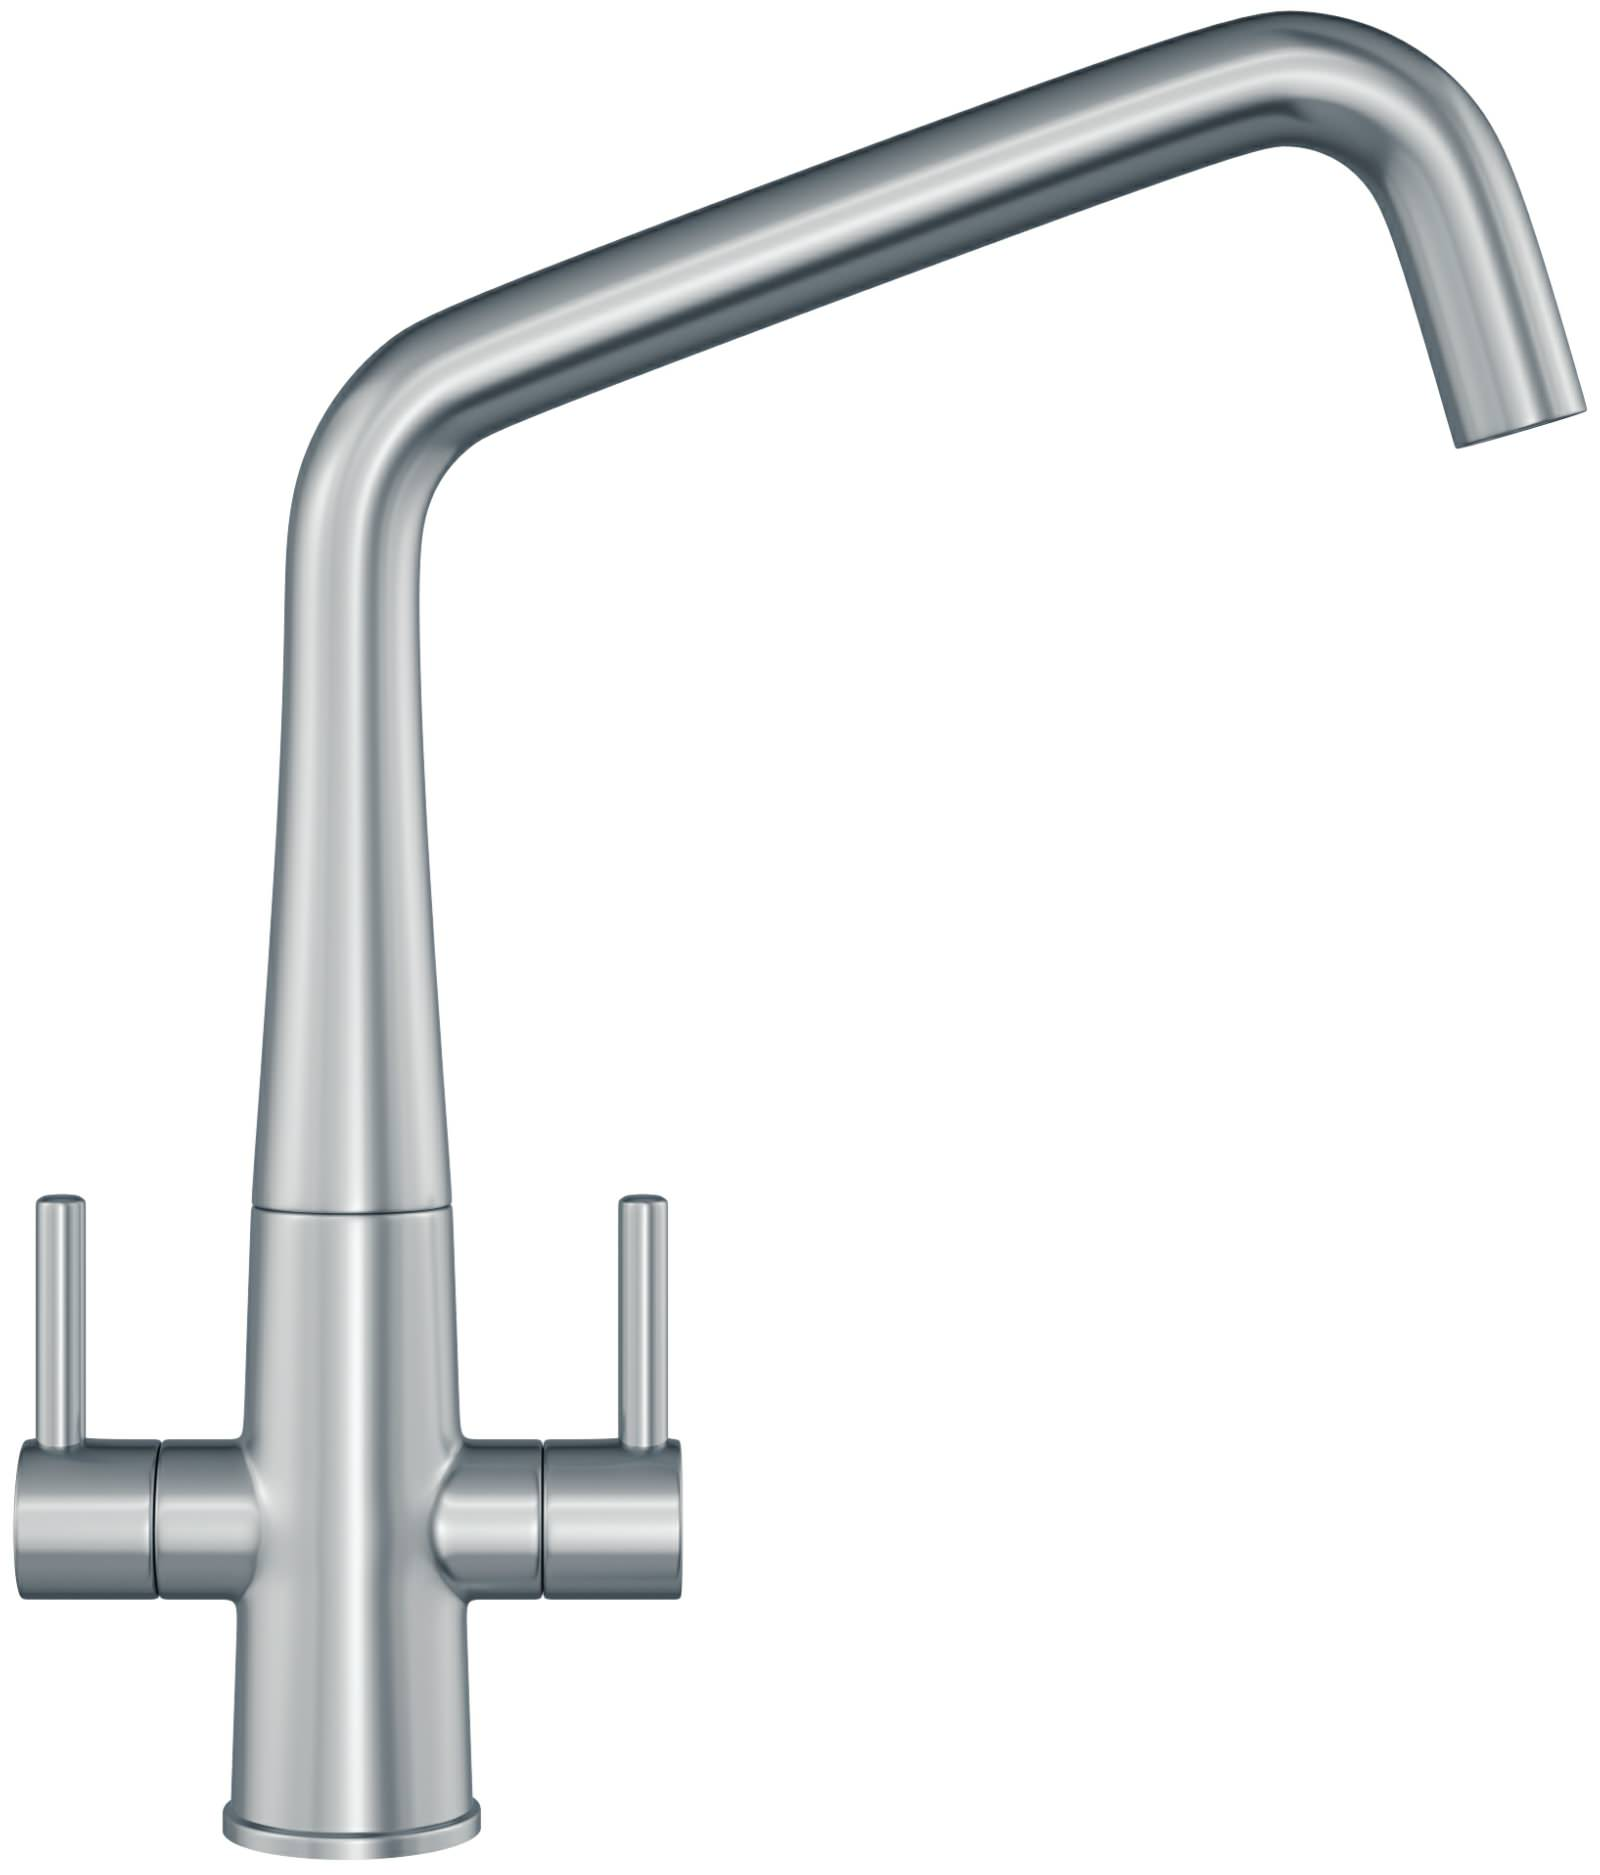 Franke Sink Mixer Taps : ... taps kitchen mixer taps franke cristallo silksteel kitchen sink mixer